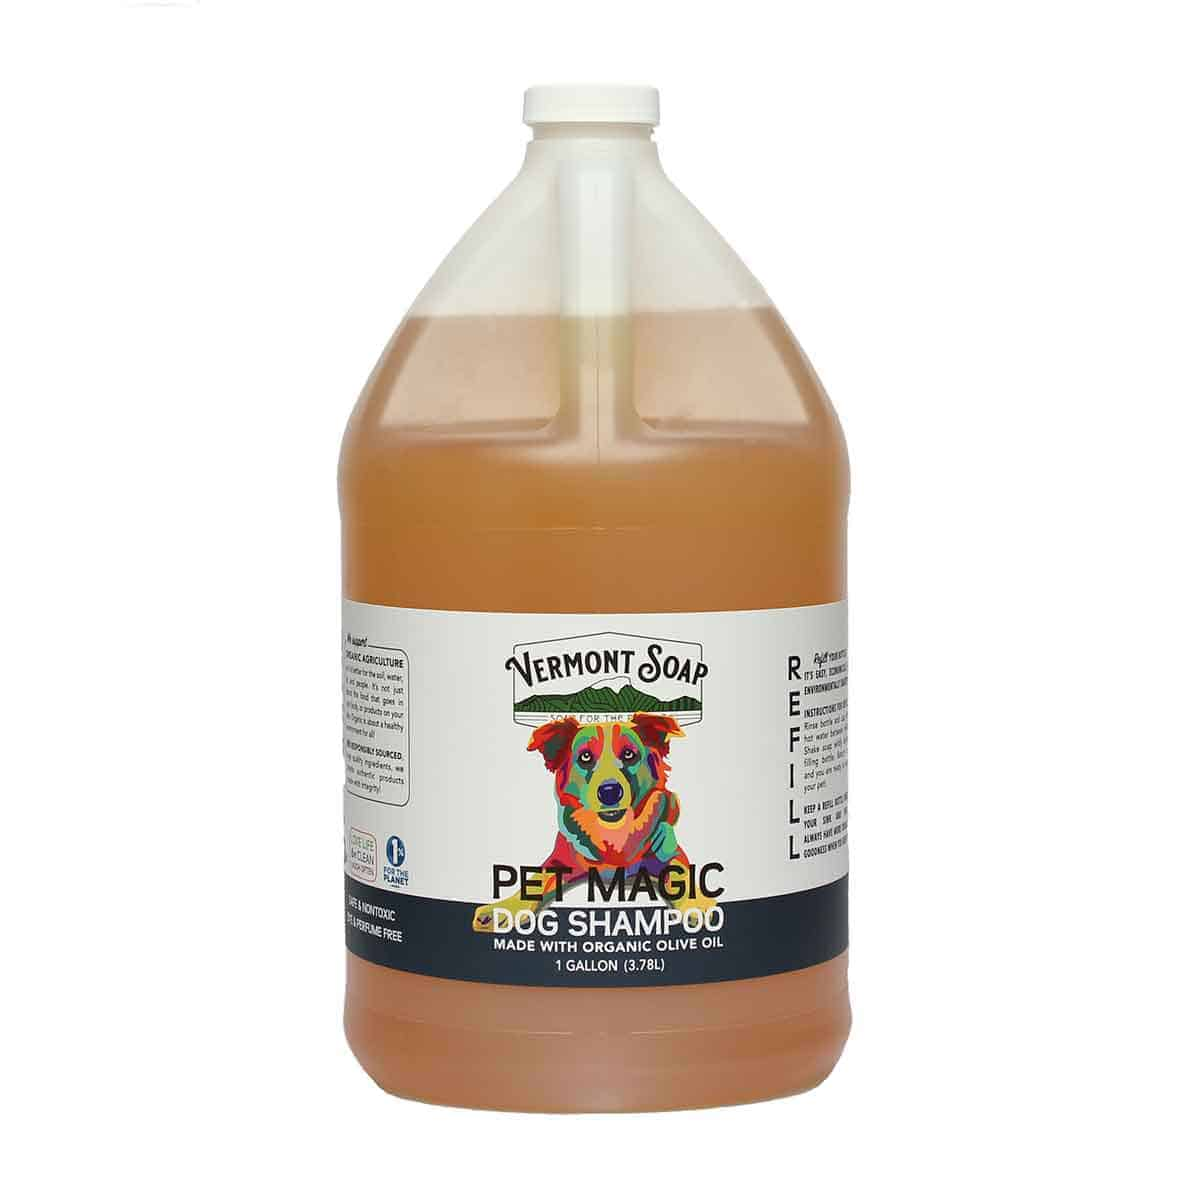 Pet Shampoo 4oz Bottle